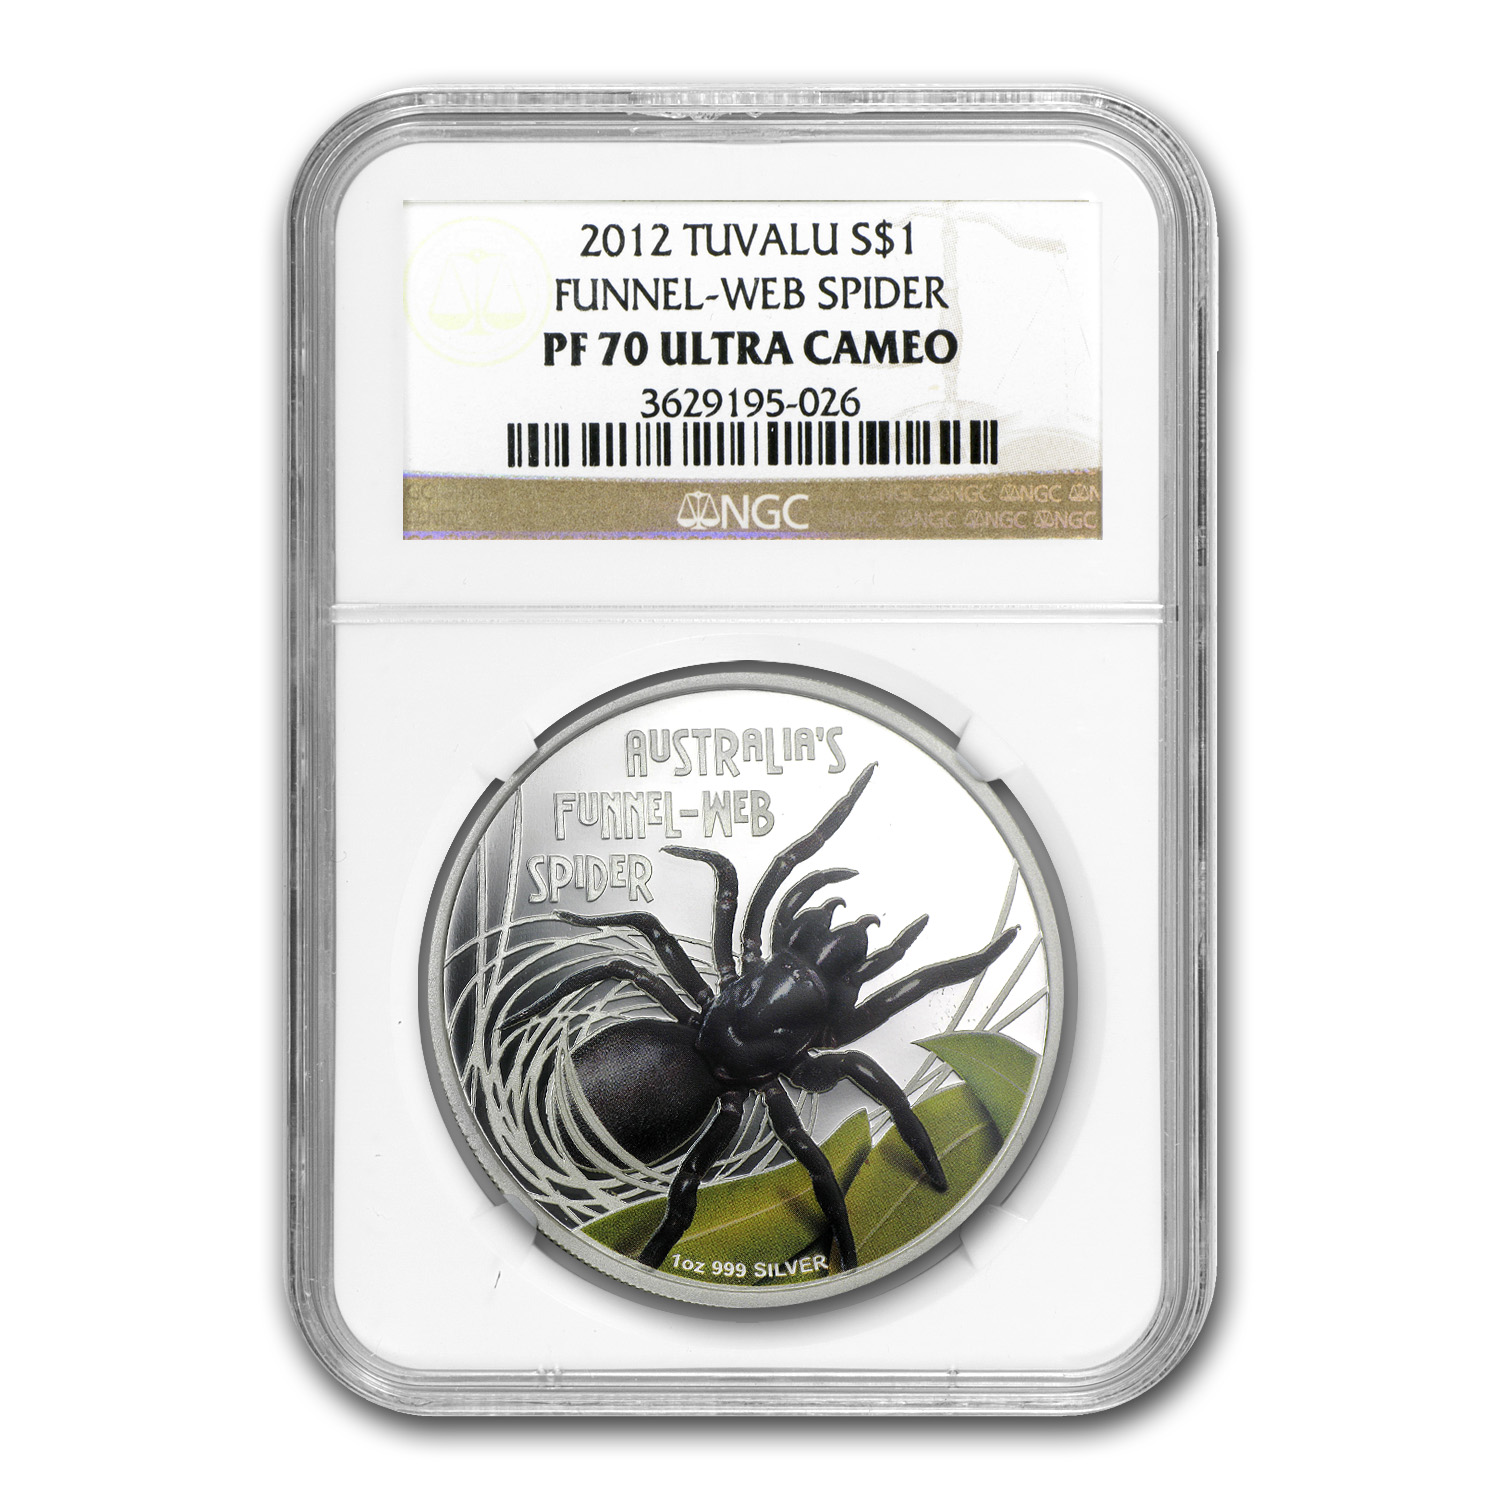 2012 Tuvalu 1 oz Silver Funnel Web Spider PF-70 NGC